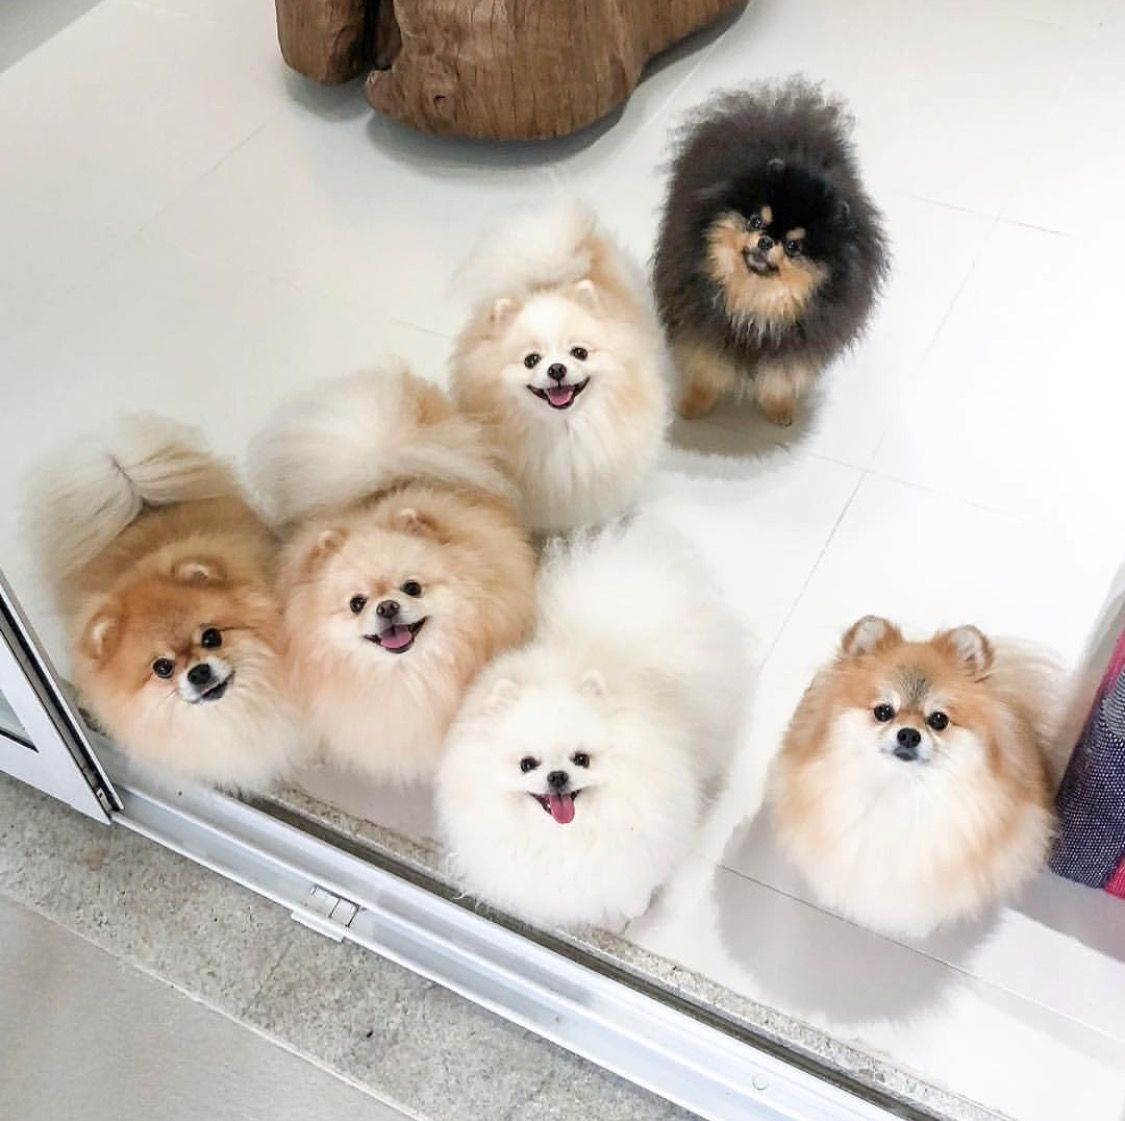 Pictures Of Dogs That Look Like Puff Balls